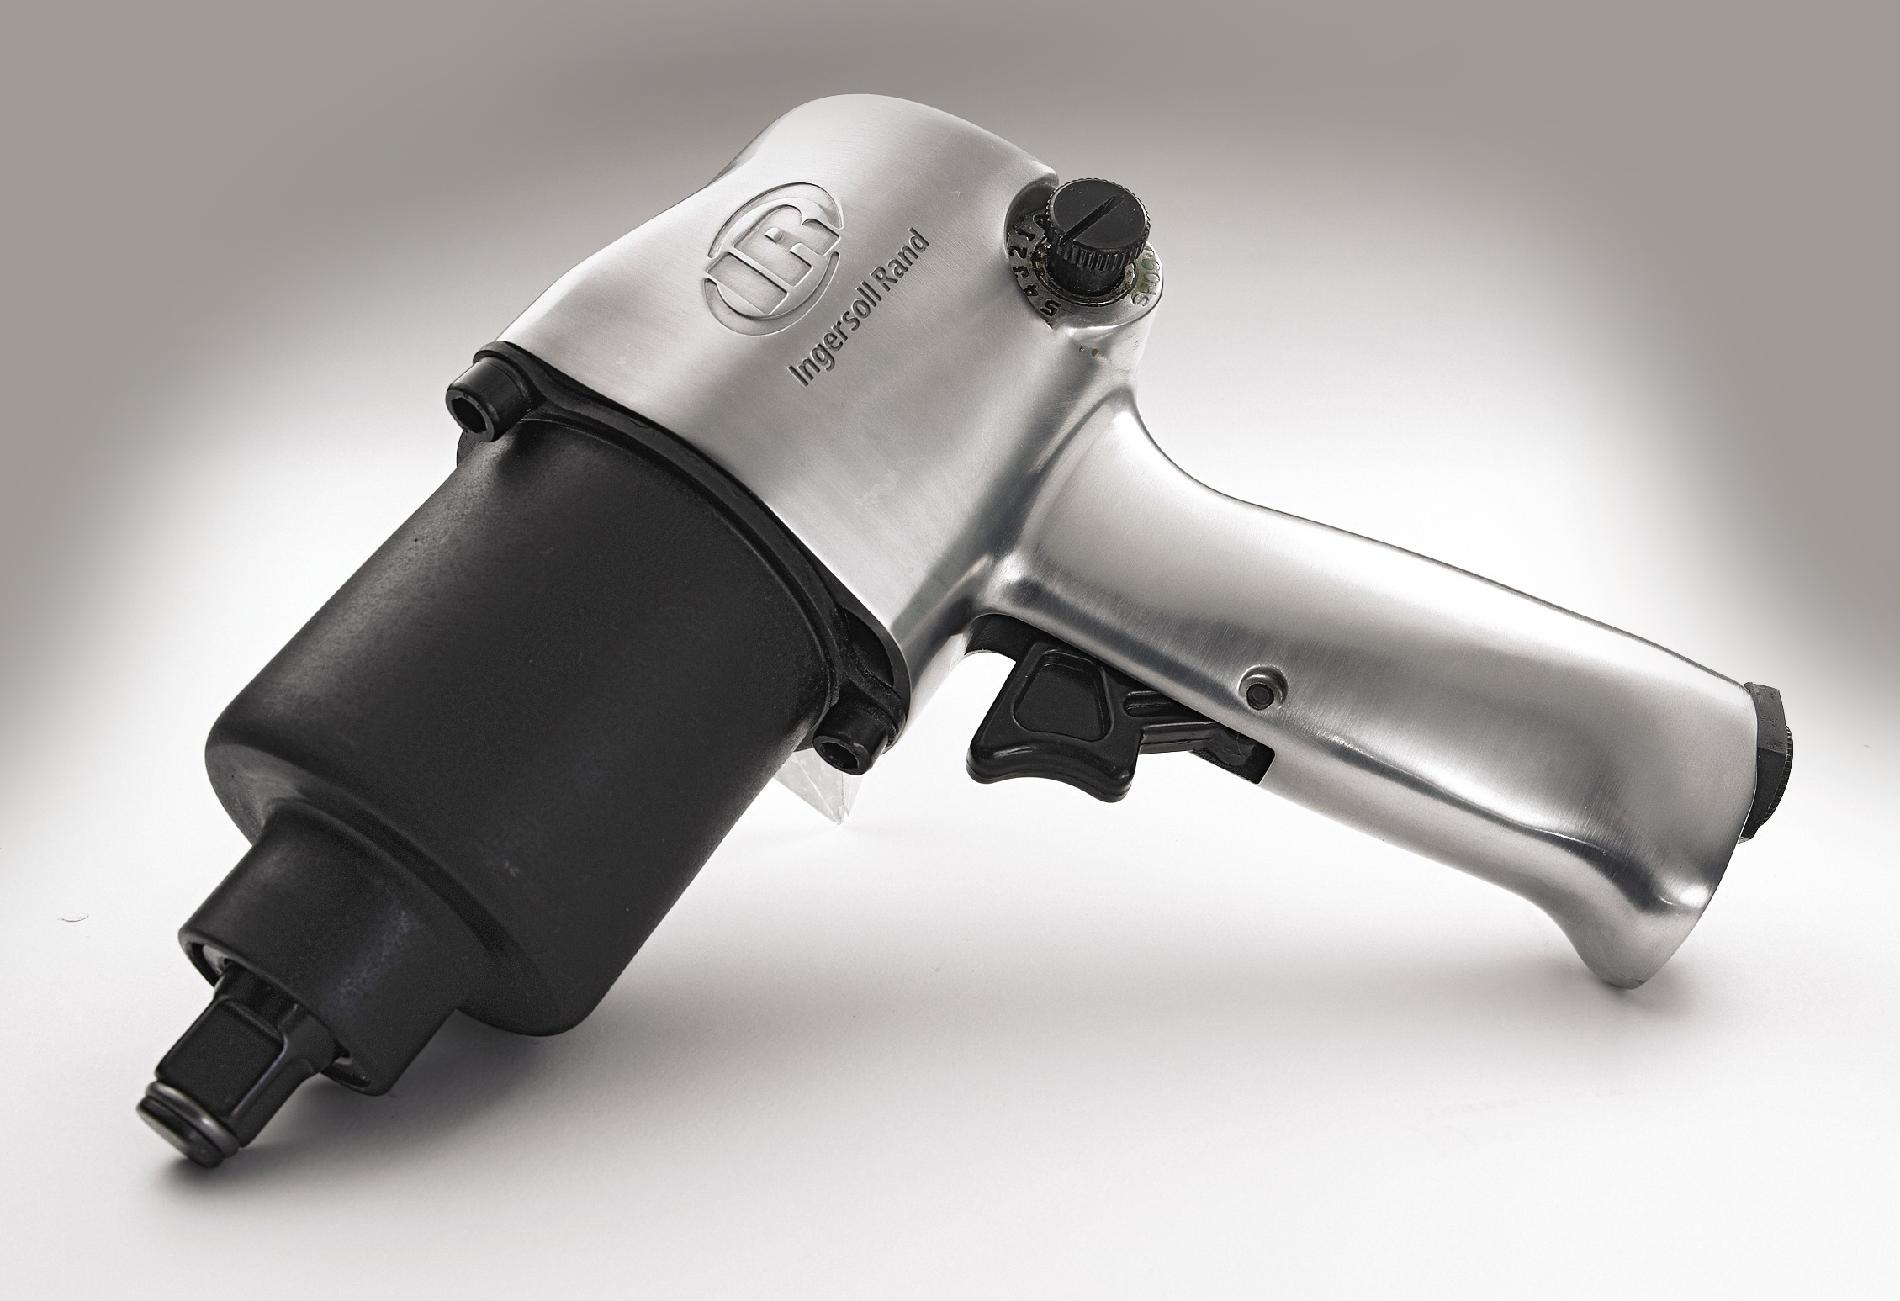 Ingersoll-Rand 1/2 in. Impact Wrench with Twin Hammer Mechanism